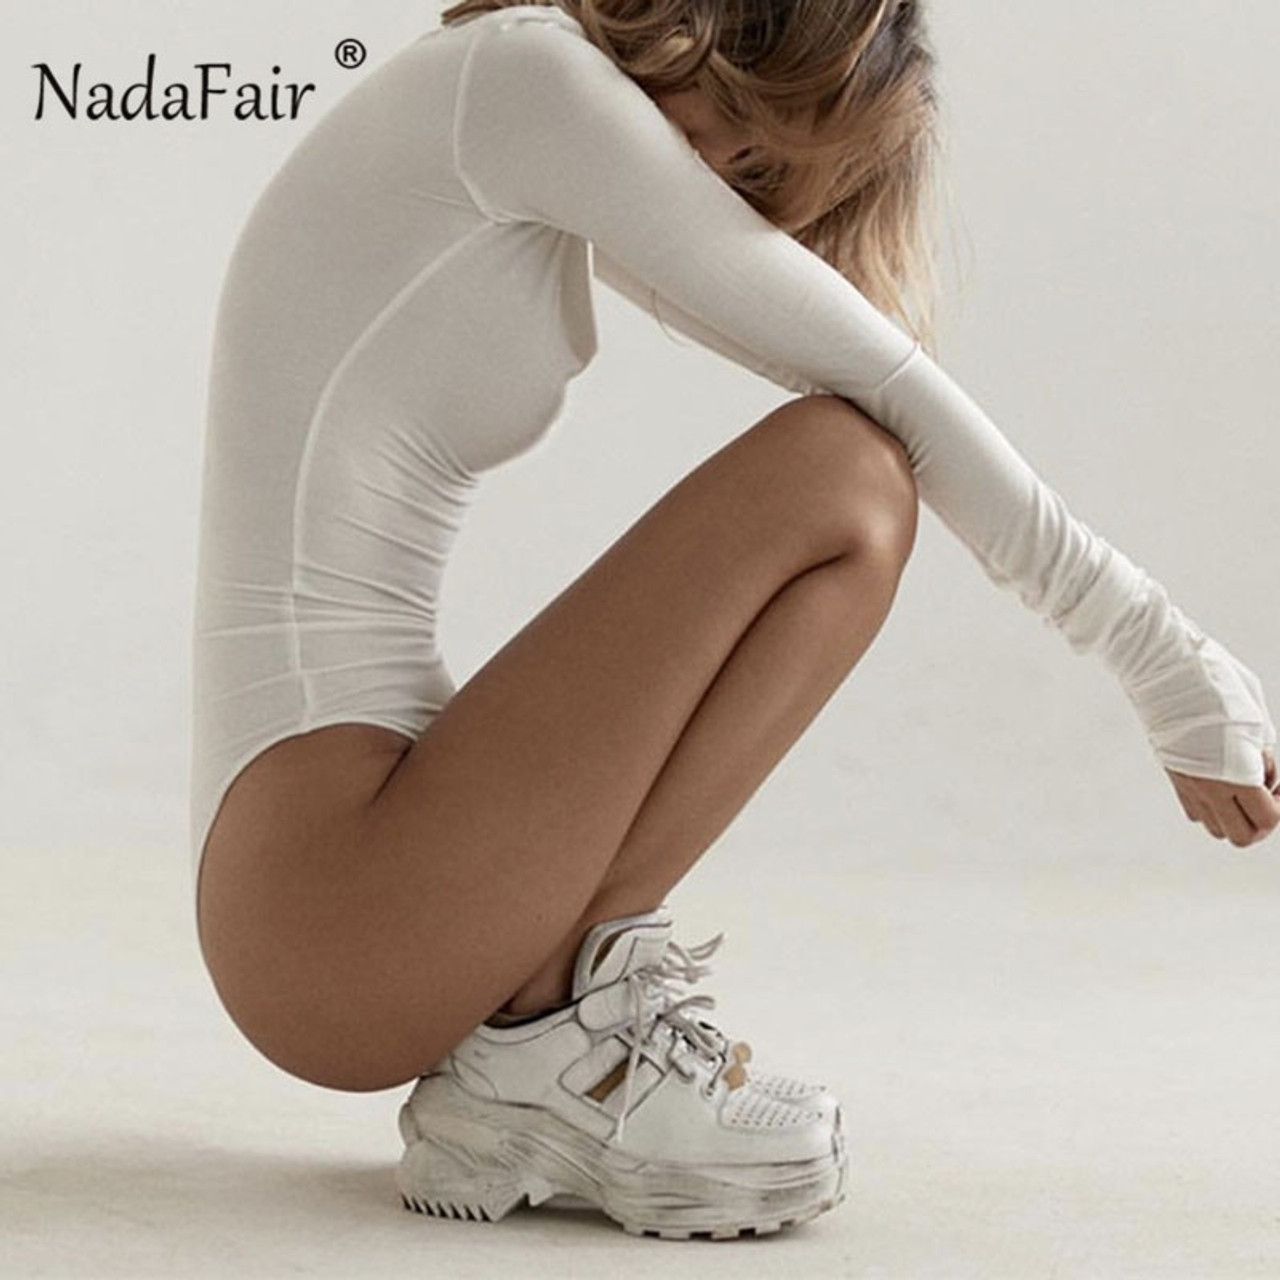 ... Nadafair Long Sleeve Turtleneck Bodysuit Women Skinny Autumn Winter  Romper Jumpsuit Streetwear Black White Neon Body ... ec37d489e